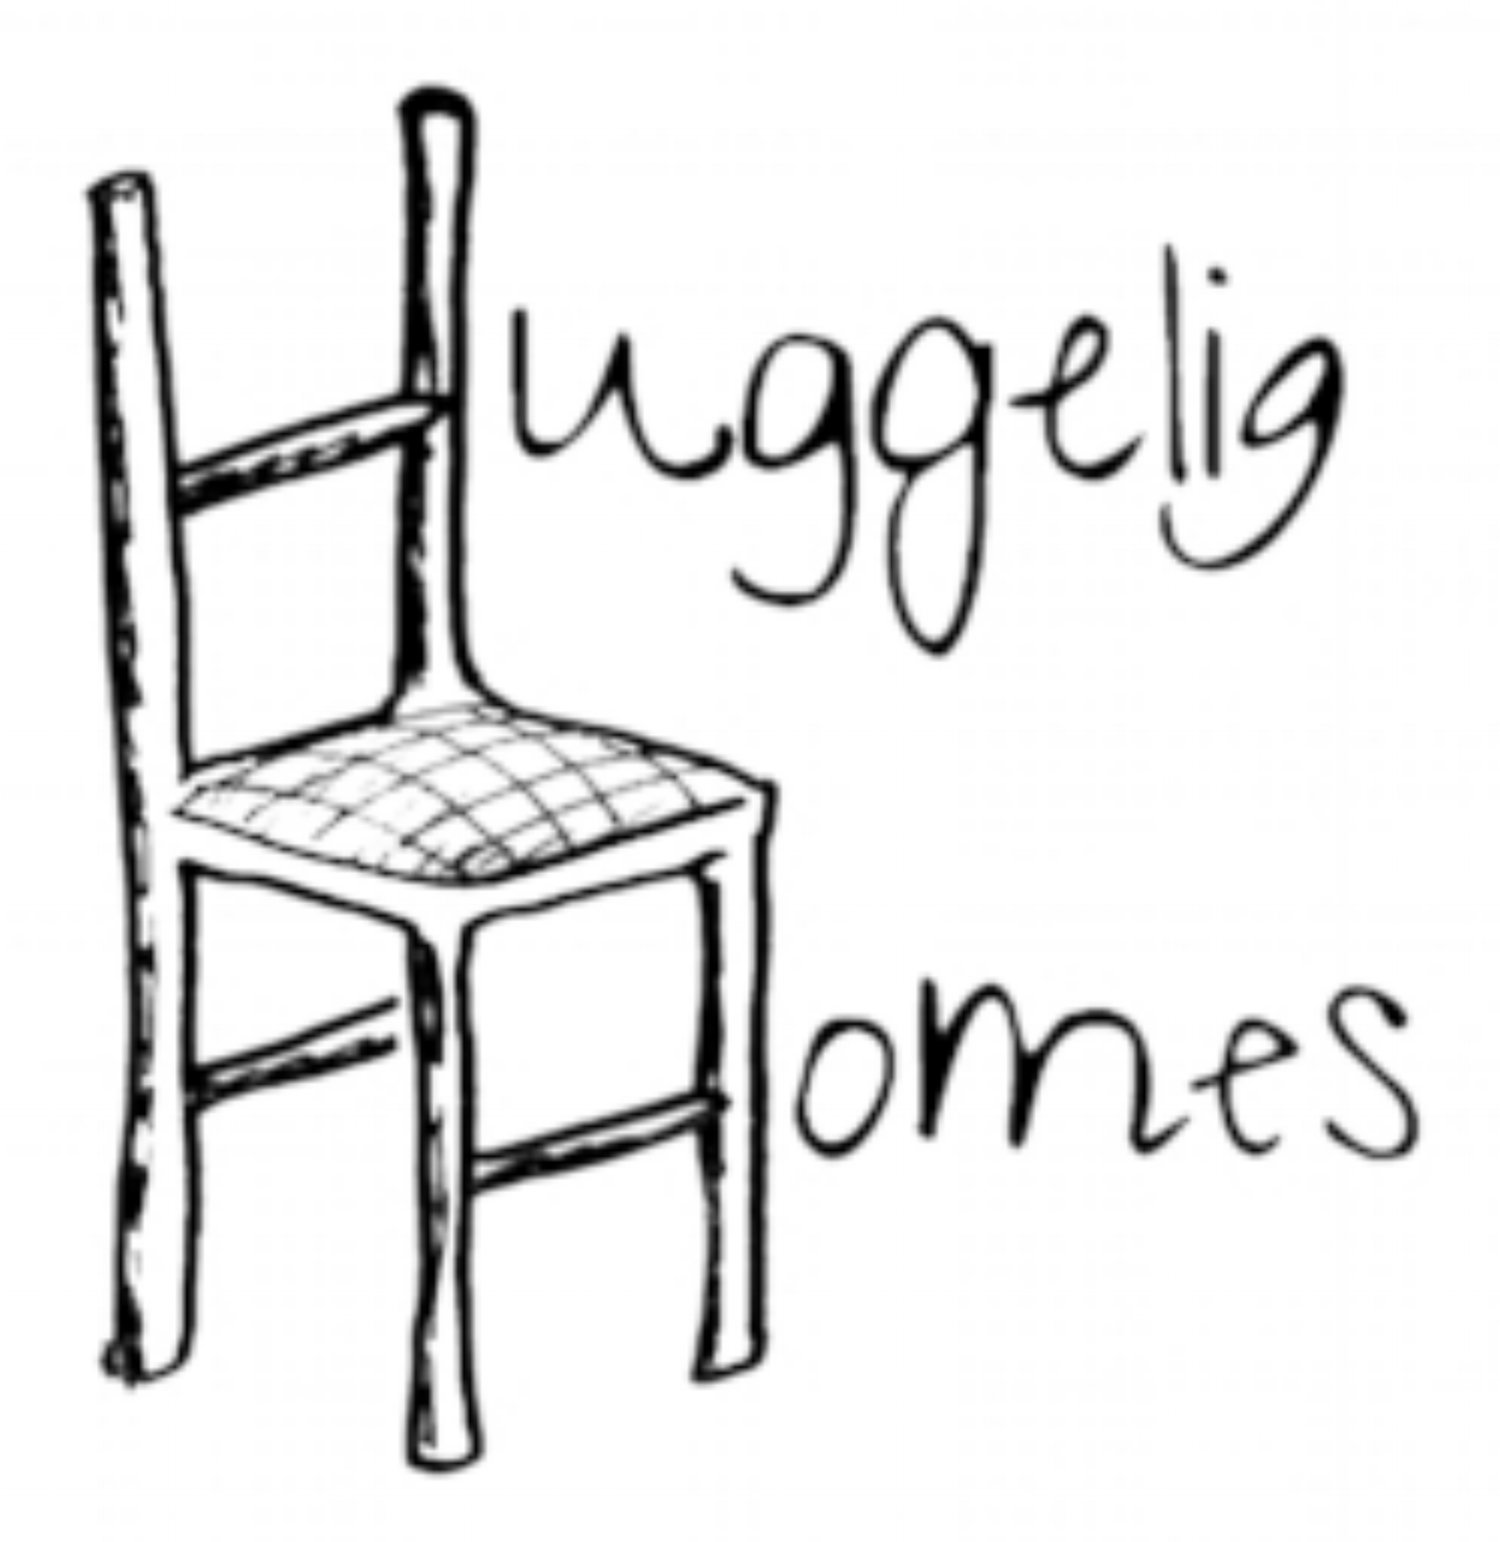 Huggelig Homes